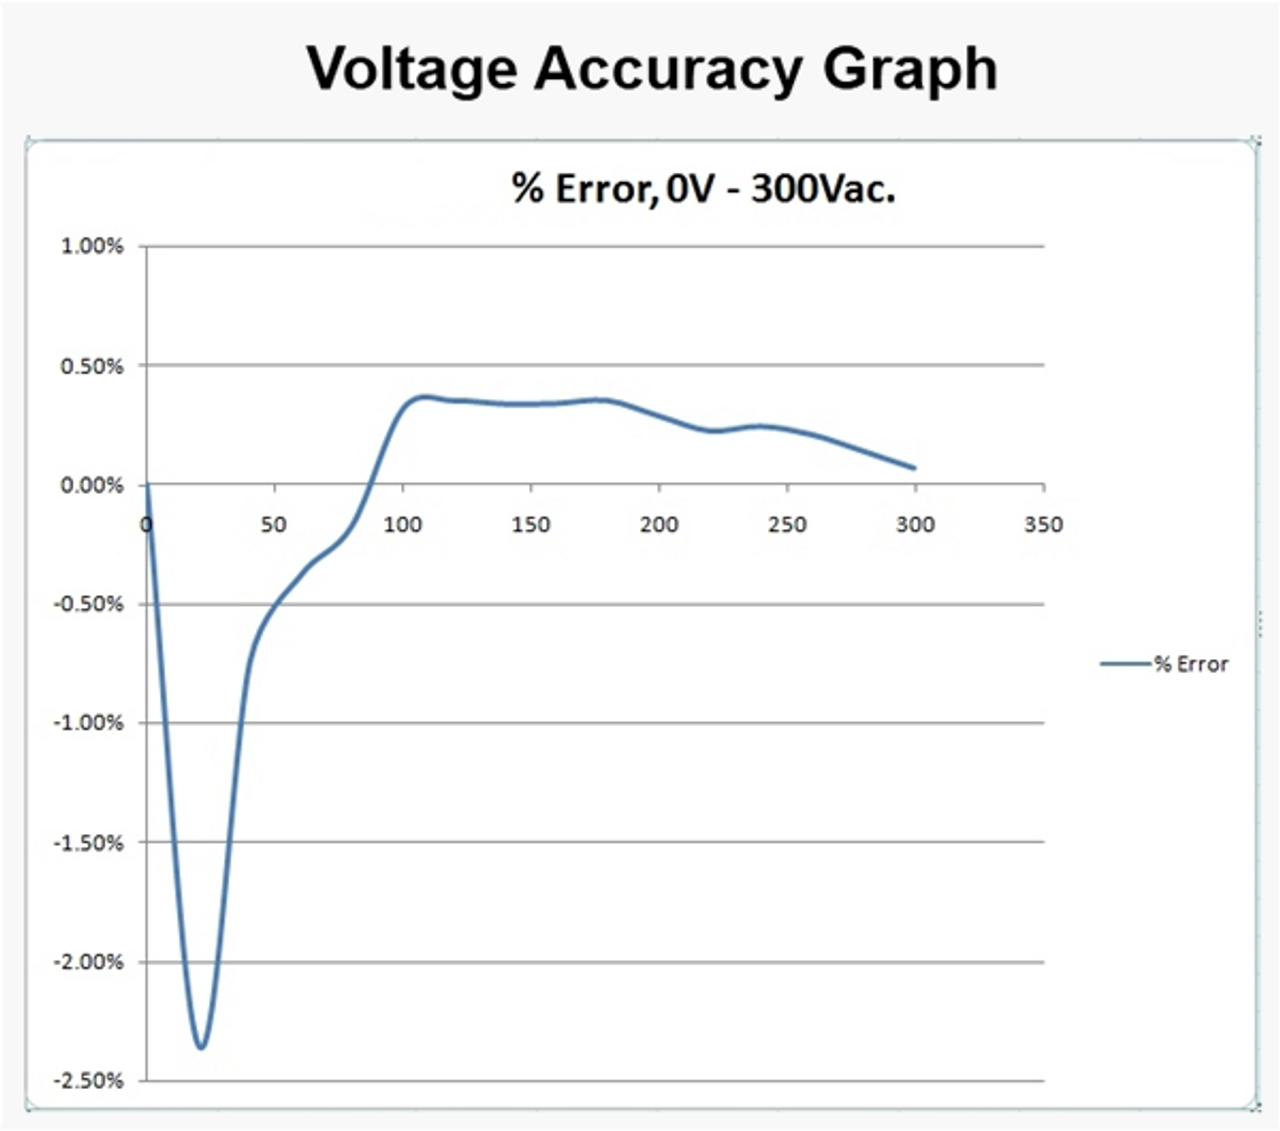 Electrocorder EC-7VAR voltage accuracy graph.